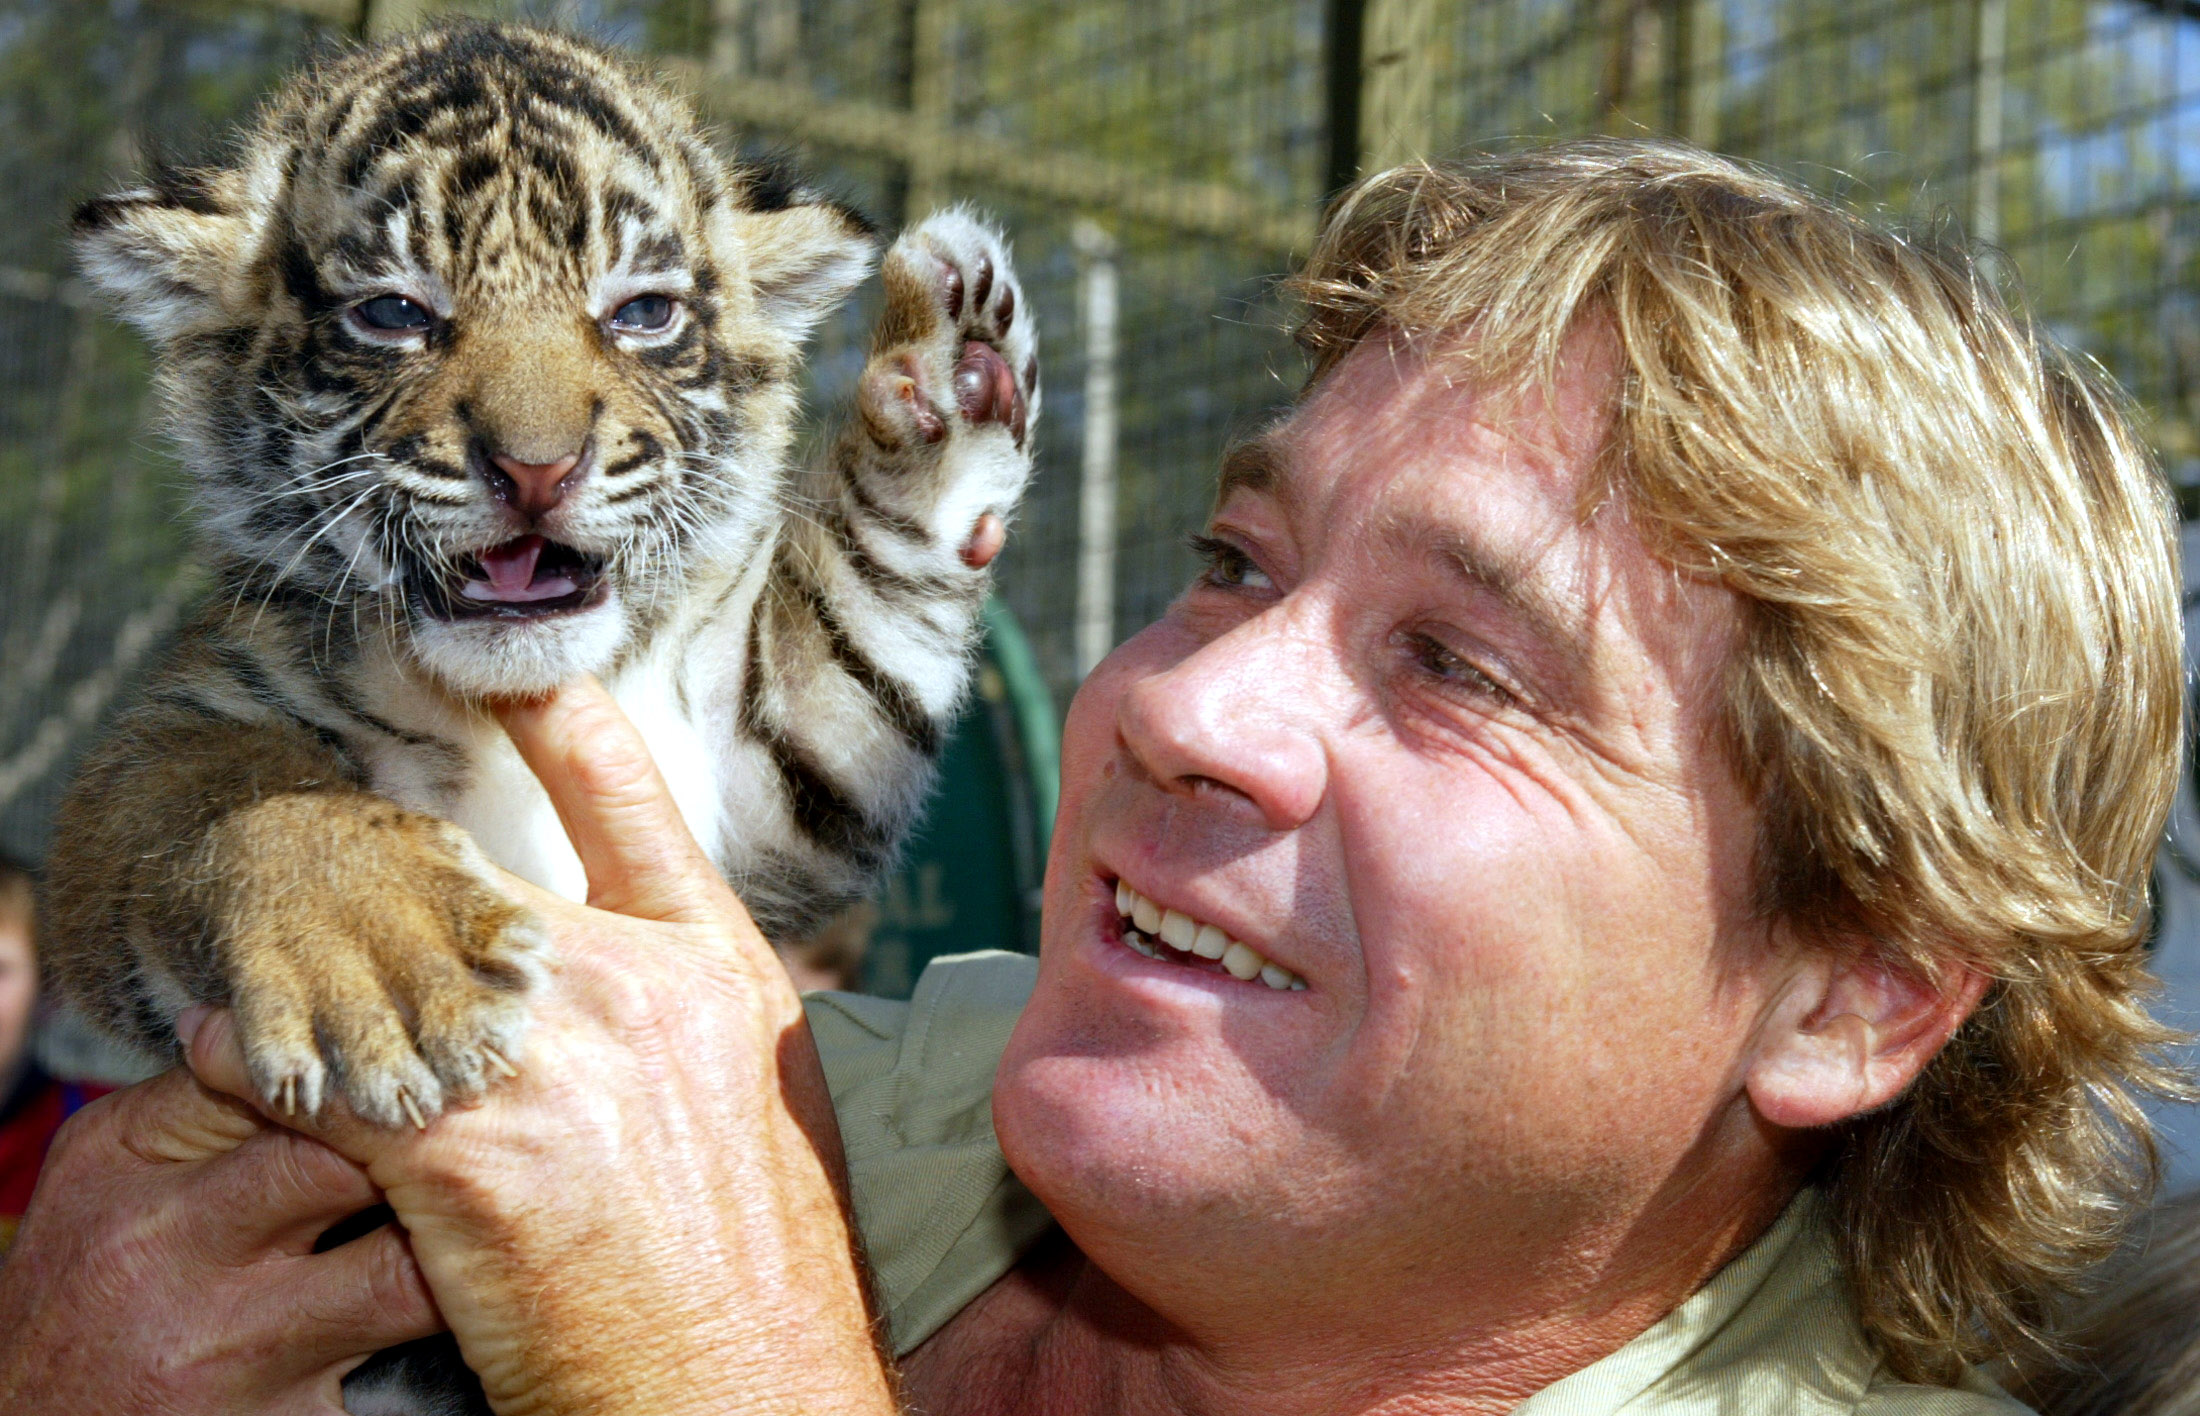 Australia's 'Crocodile Hunter' Steve Irwin holds a pure bred Sumatran tiger cub at Mogo Zoo south of Sydney April 27, 2004. Photo by Jim Ruymen/Reuters